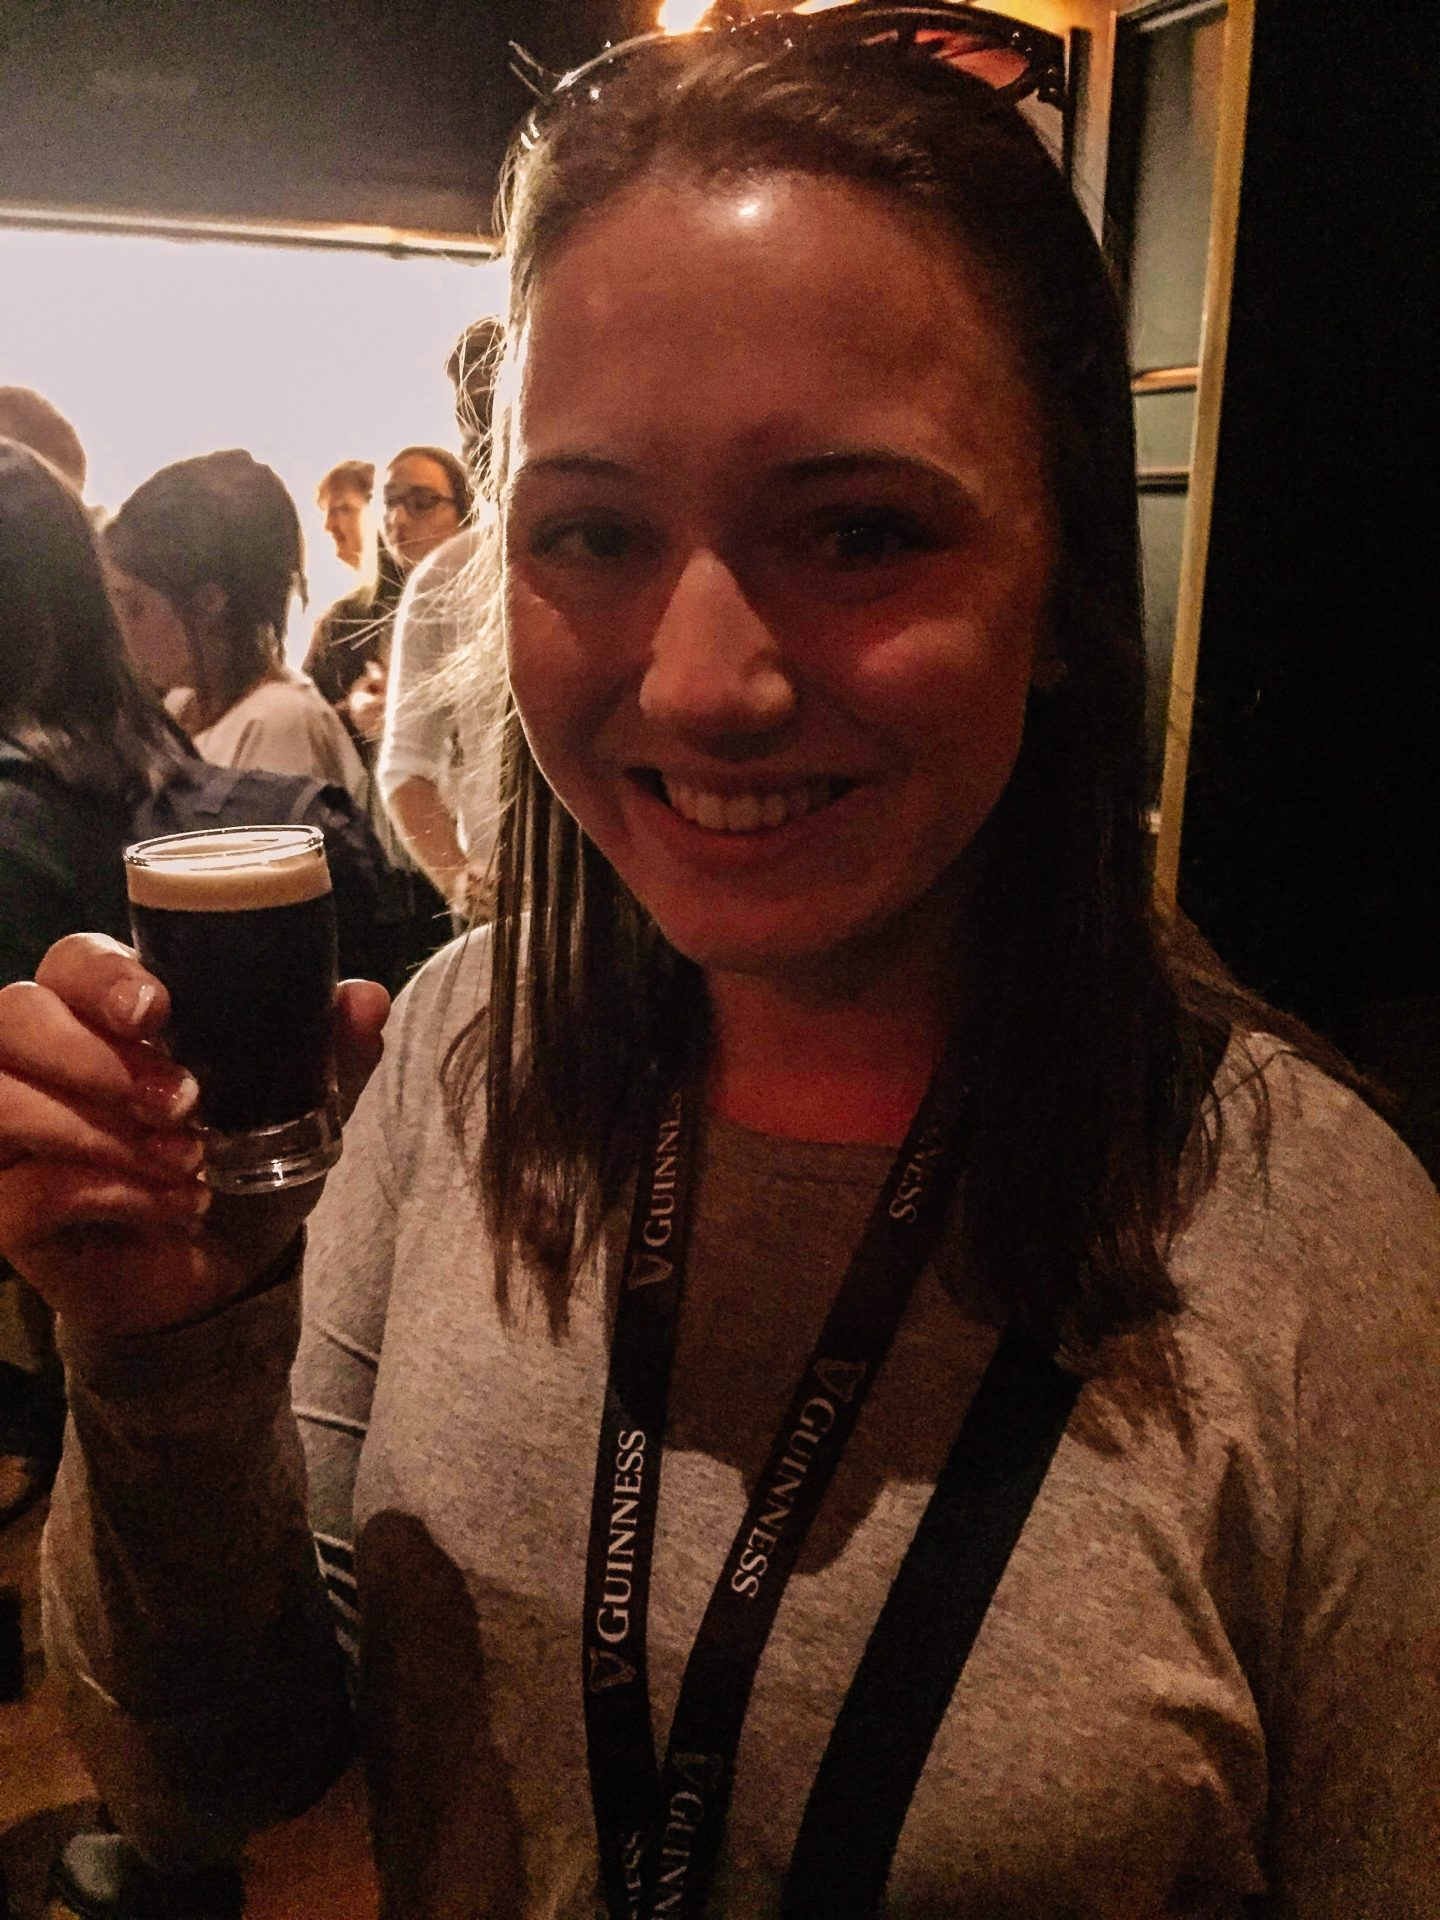 Woman traveling to Dublin Ireland at Guinness Storehouse holding up a small glass of beer smiling.